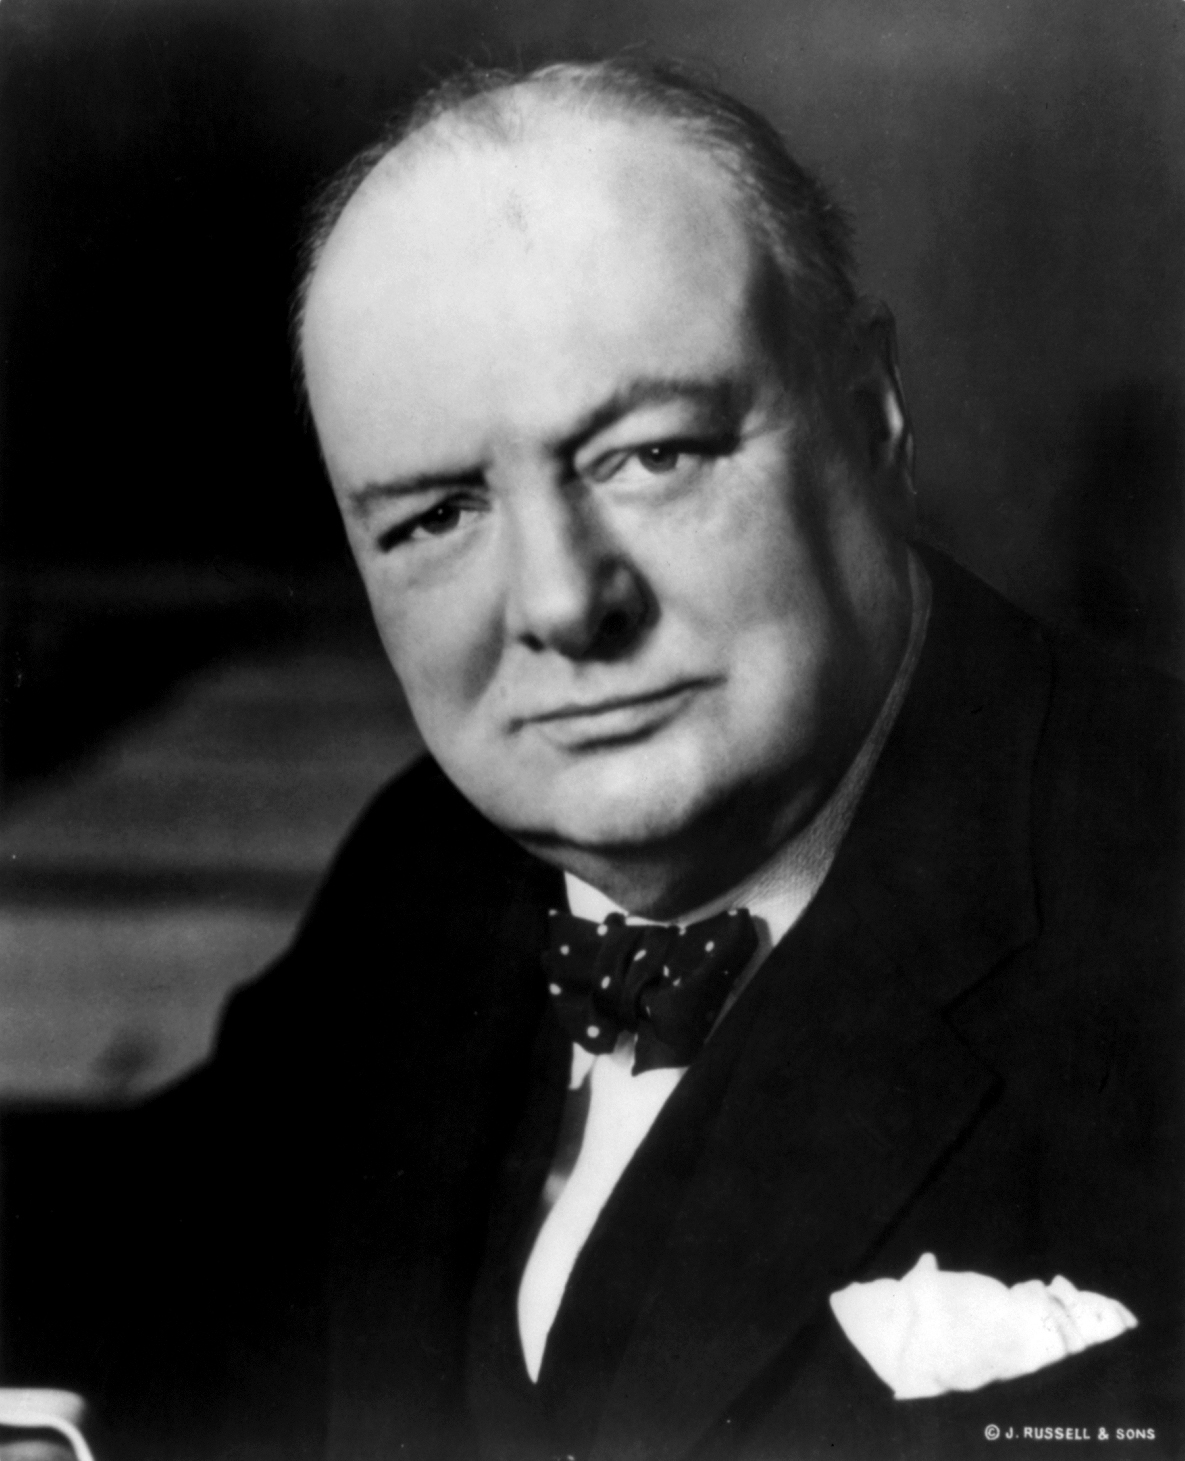 a biography of sir winston spencer churchill the prime minister Sir winston leonard spencer-churchill kg om ch td frs pc (30 november 1874 – 24 january 1965) was an english politician he was prime minister of the united kingdom twice, once during world war ii , and again in the early 1950s.